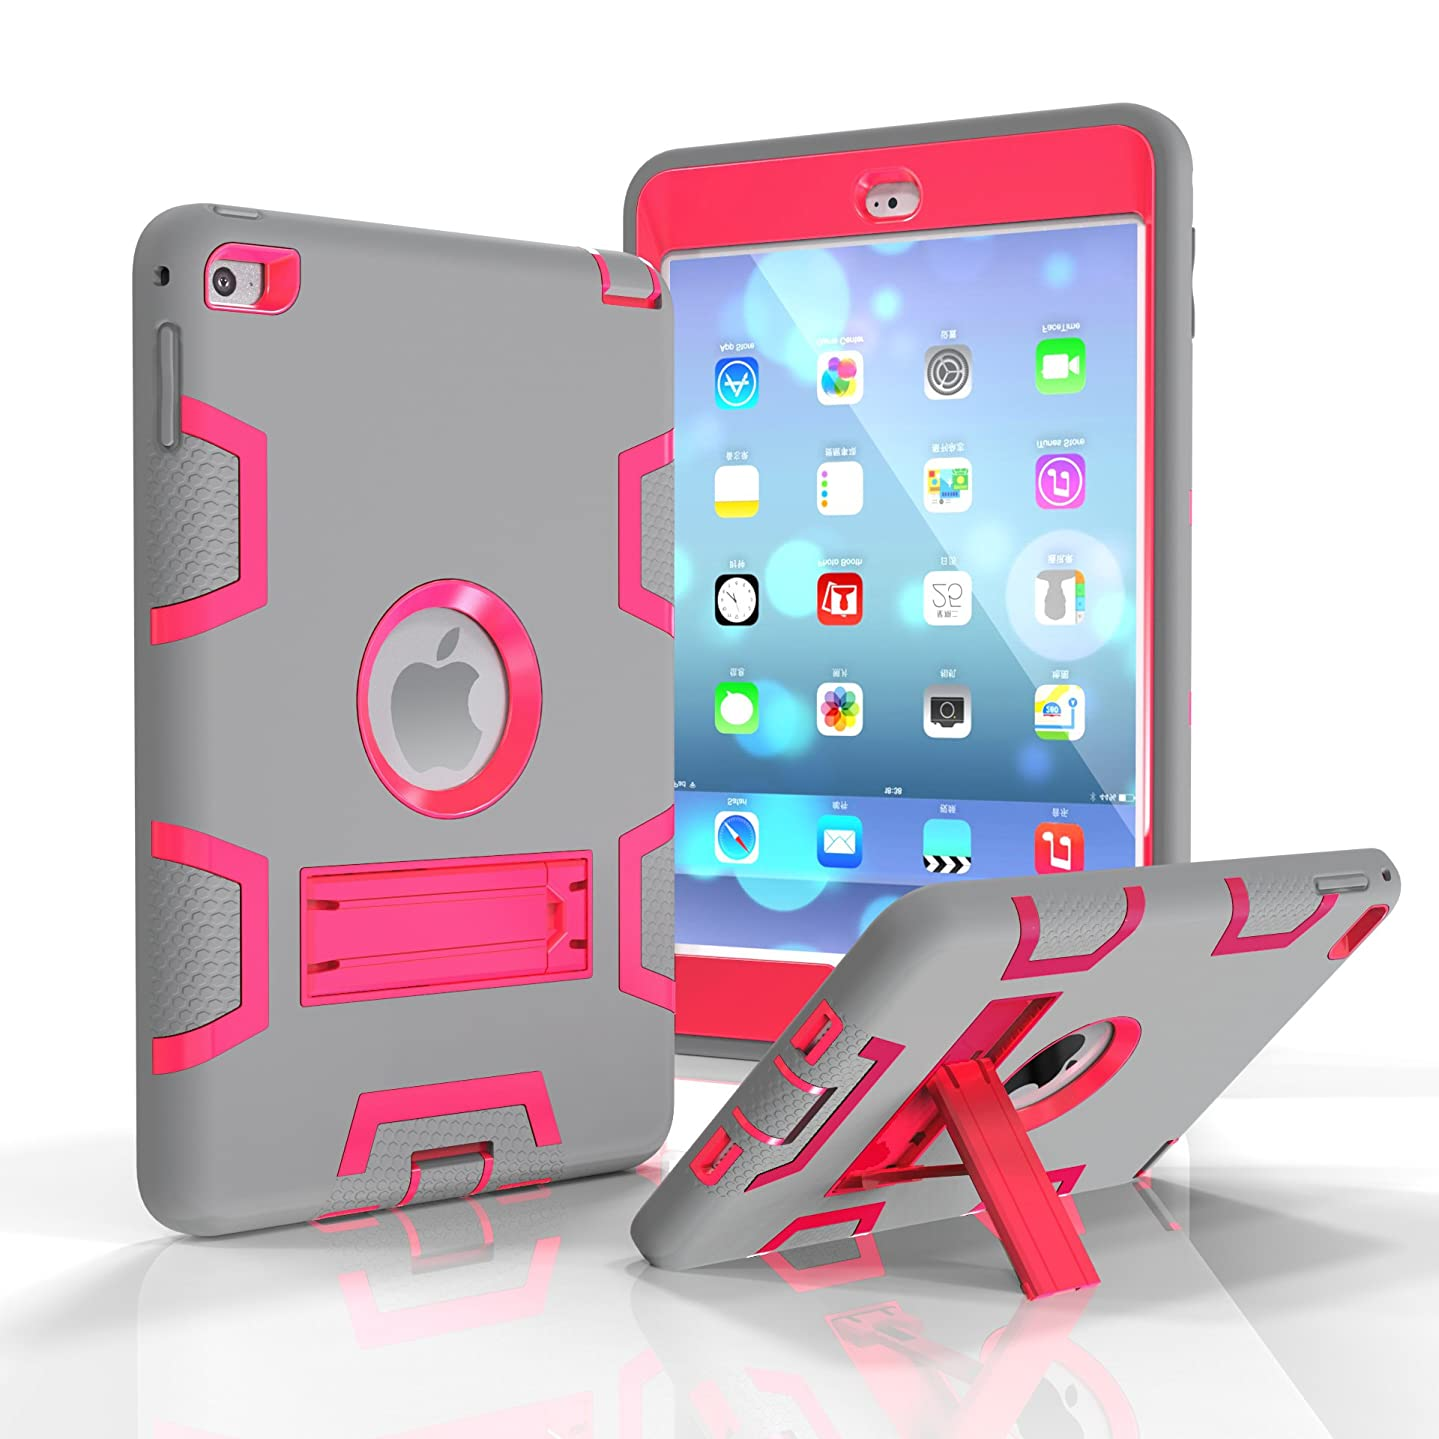 iPad Mini 4 Case, Dooge Three Layers PC&Silicon Armor Defender Heavy Duty Shockproof Rugged Hybrid Full Body Protective Case with Kickstand for Apple iPad Mini 4 (7.9 Inch)